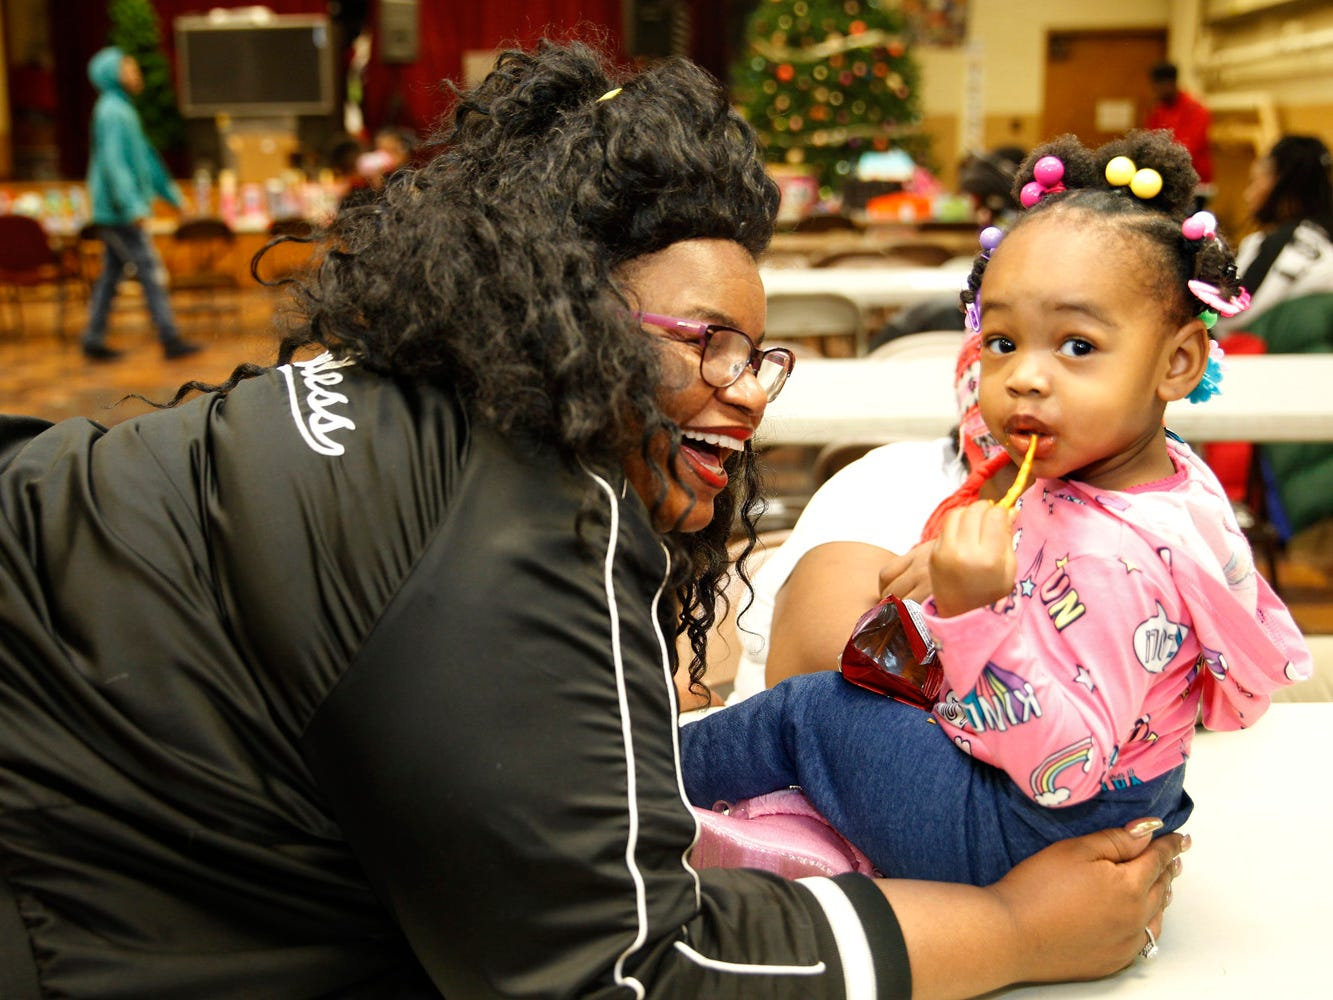 Gloria Nichols enjoys a happy moment with her granddaughter, Kensley Williams, 2, during a holiday event held by her nonprofit, Robert's Way.